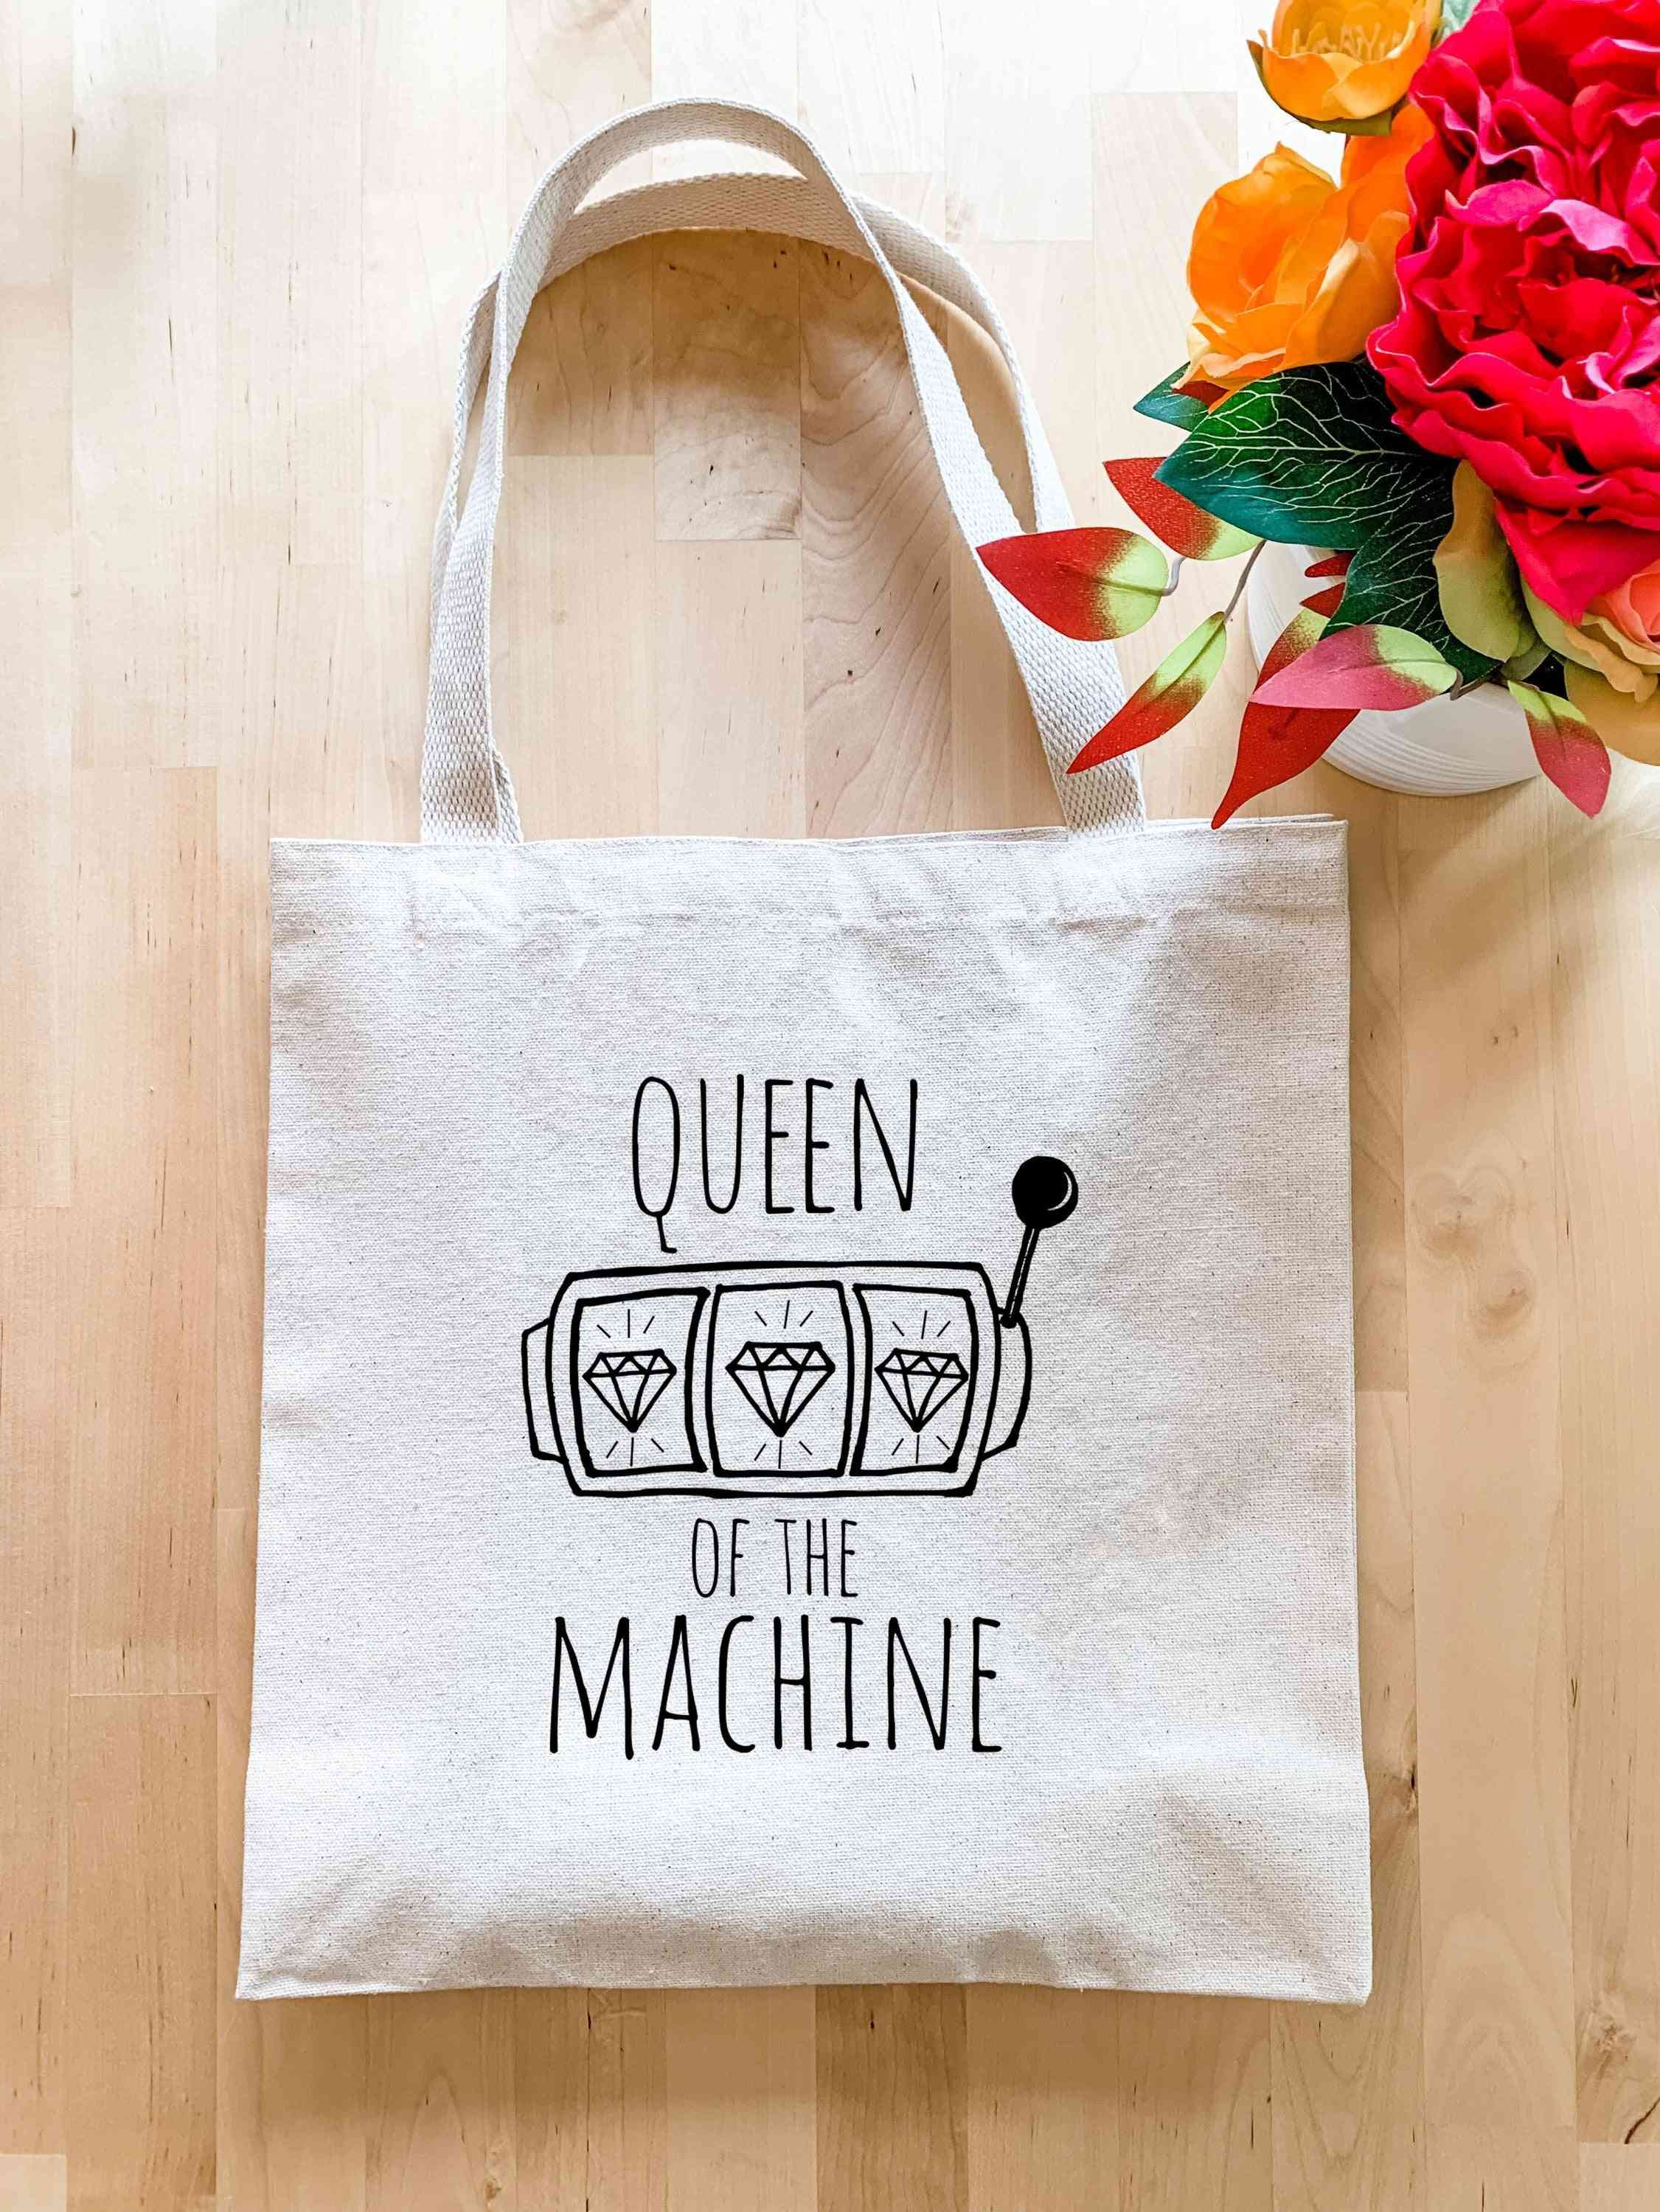 Queen Of The Machine - Tote Bag